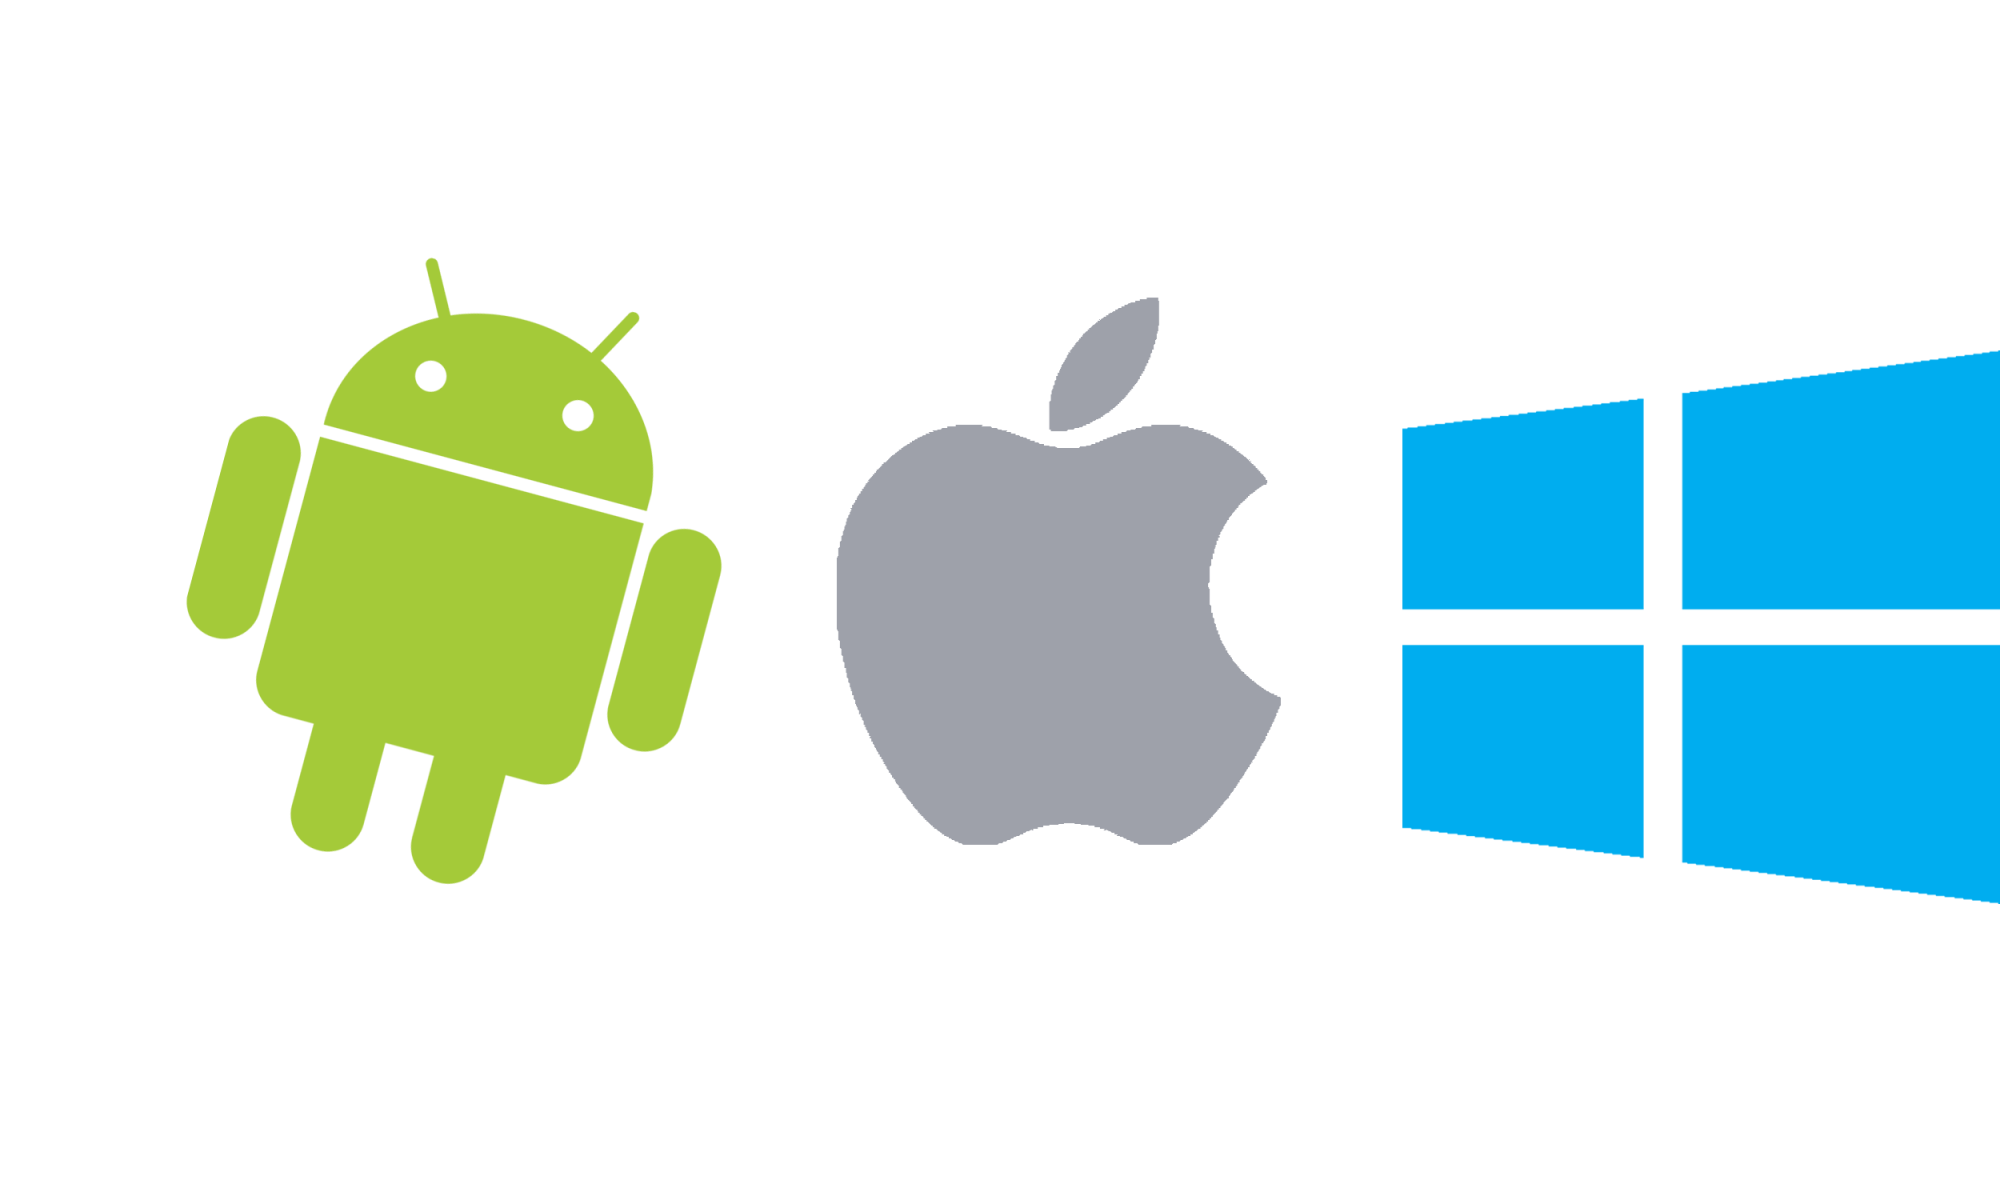 Android_iOS_Windows-2000x1200